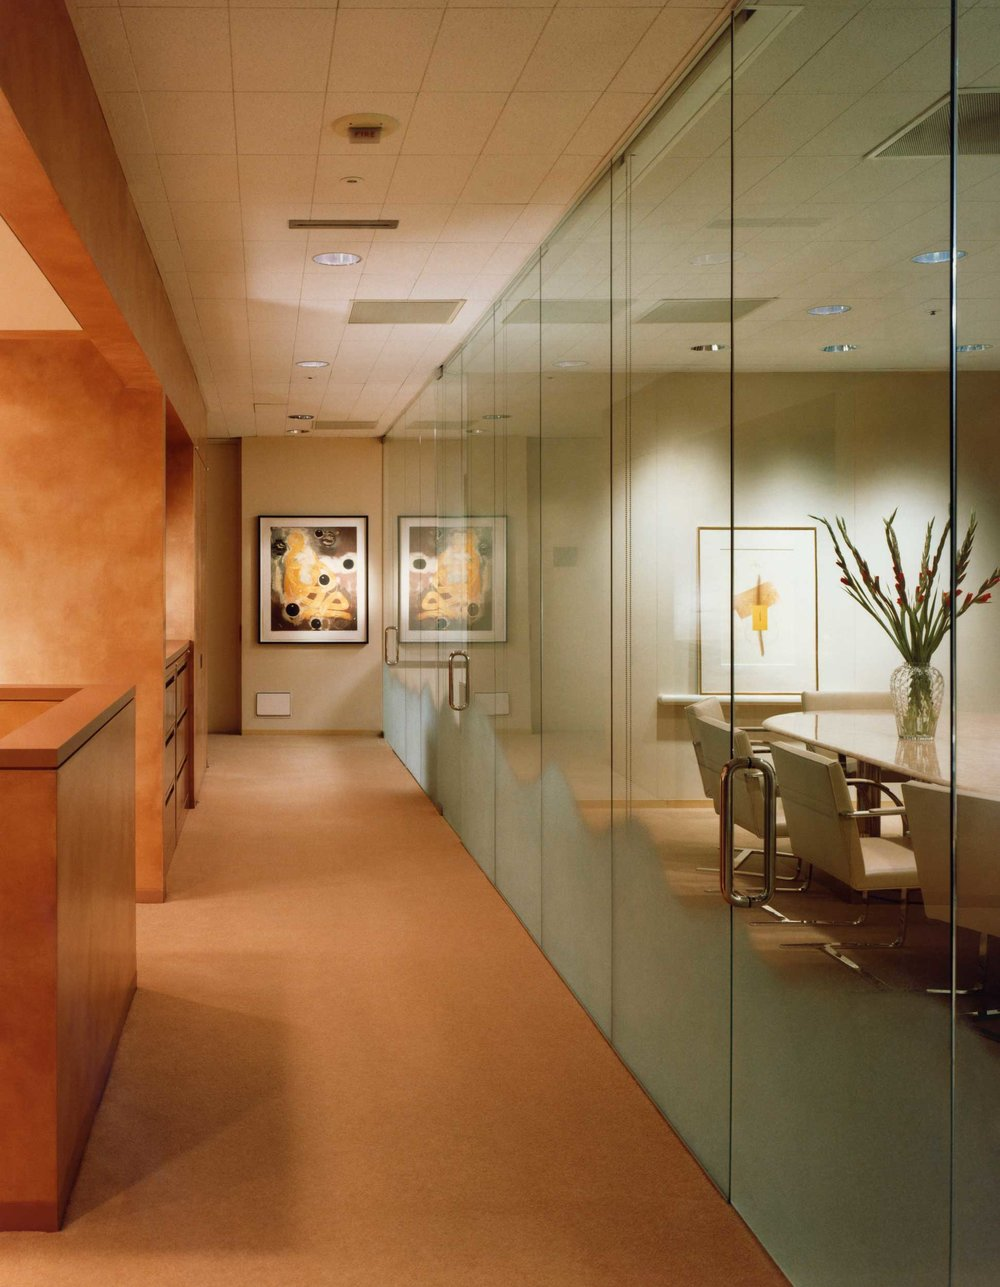 Office Corridor and Conference Room